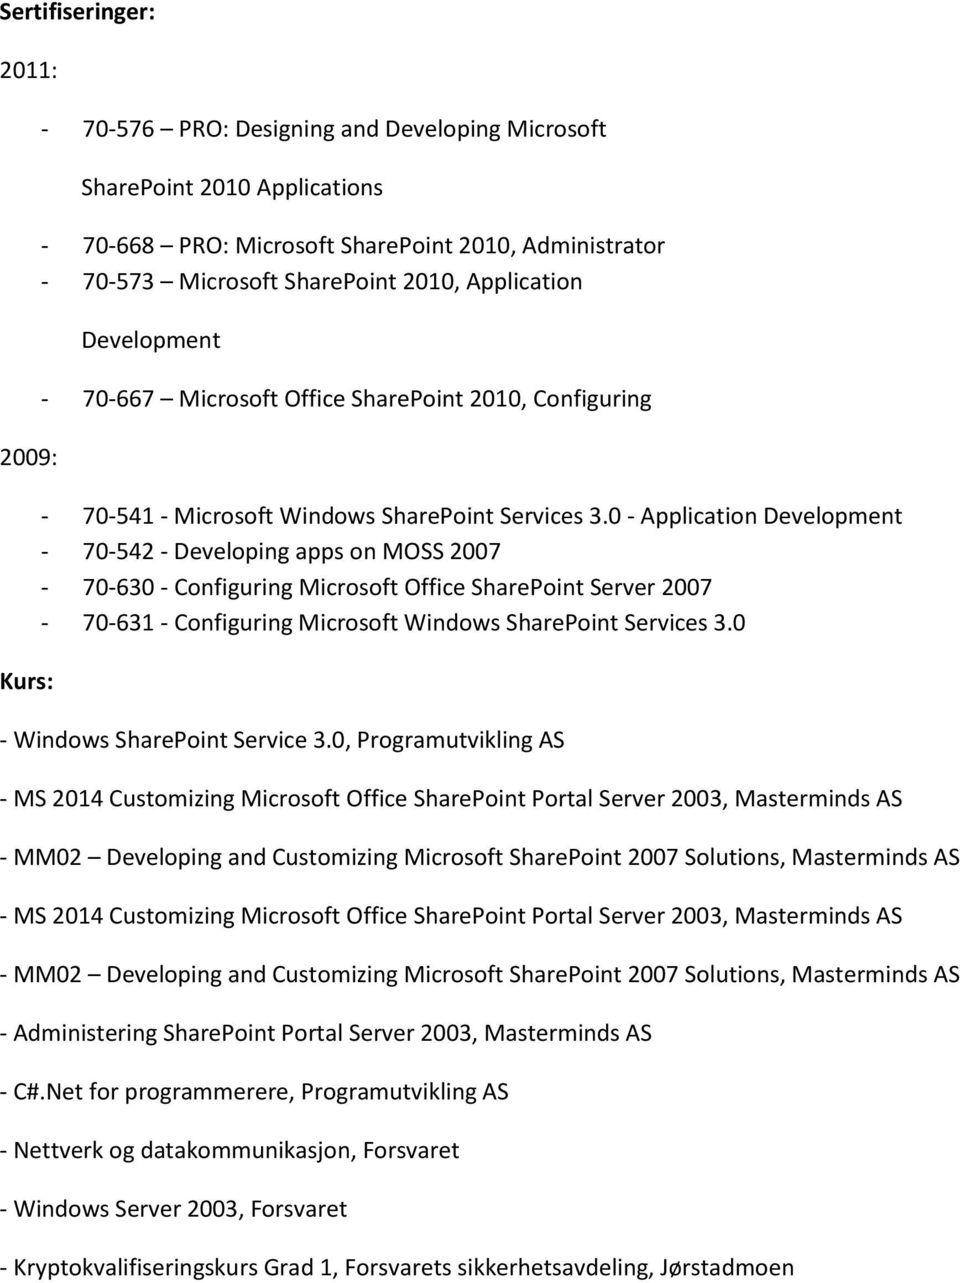 0 - Application Development - 70-542 - Developing apps on MOSS 2007-70-630 - Configuring Microsoft Office SharePoint Server 2007-70-631 - Configuring Microsoft Windows SharePoint Services 3.